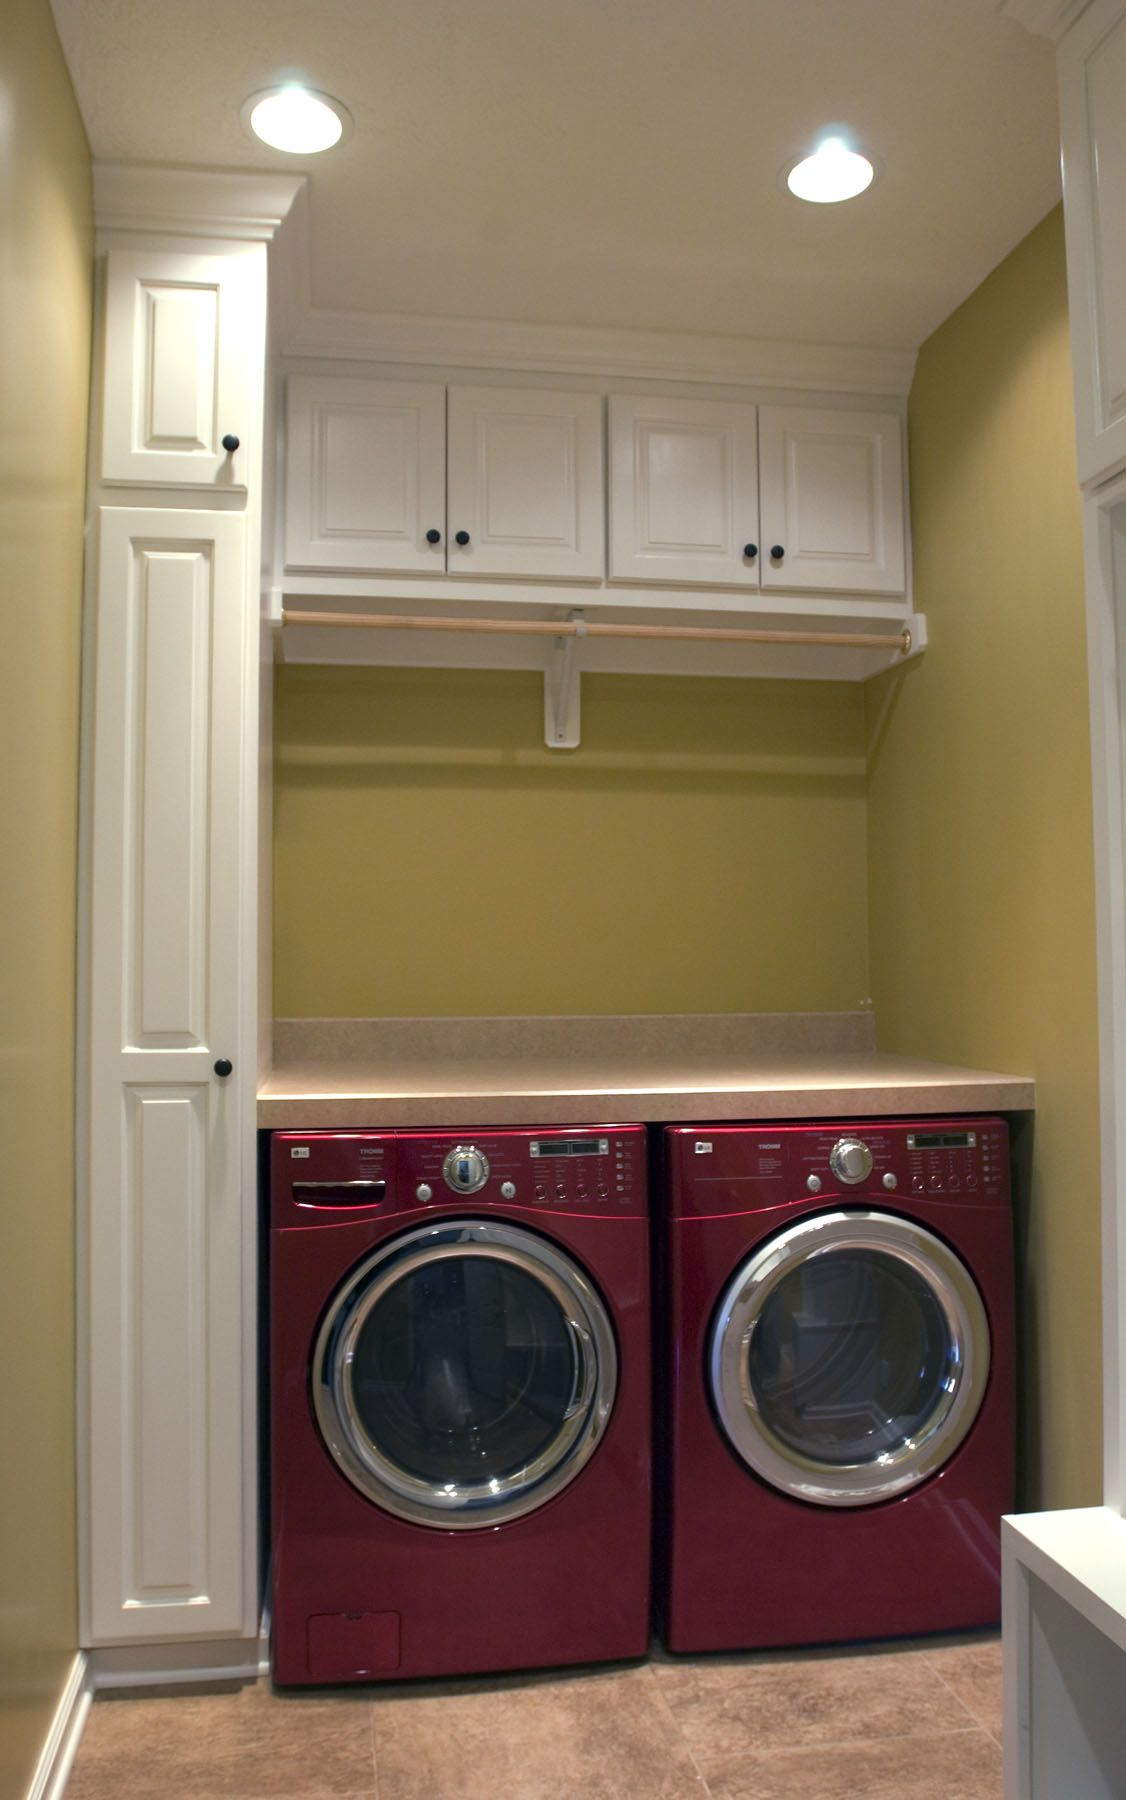 trendy small laundry room ideas 1126 x 1800 171 kb jpeg